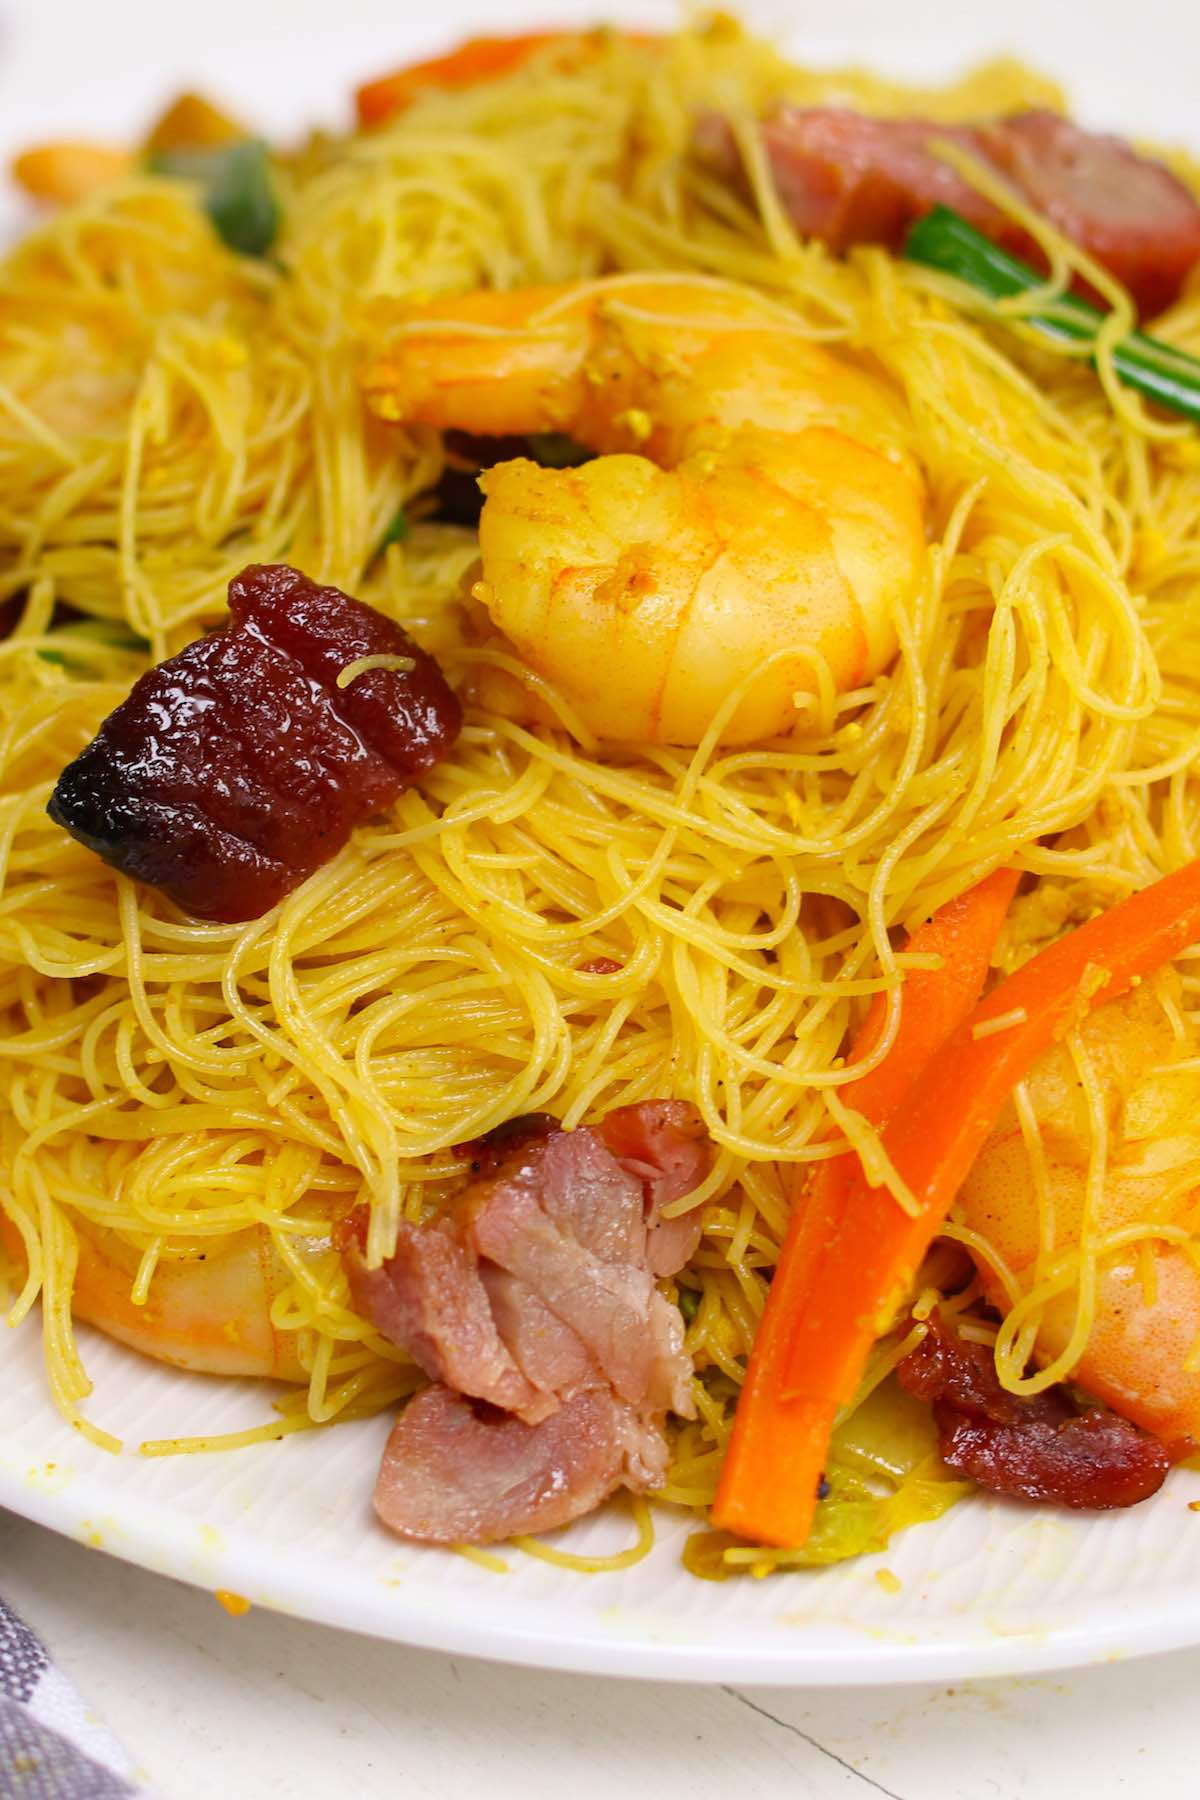 Closeup of Singapore chow mei fun showing the vermicelli rice noodles, barbecue pork, shrimp and vegetables